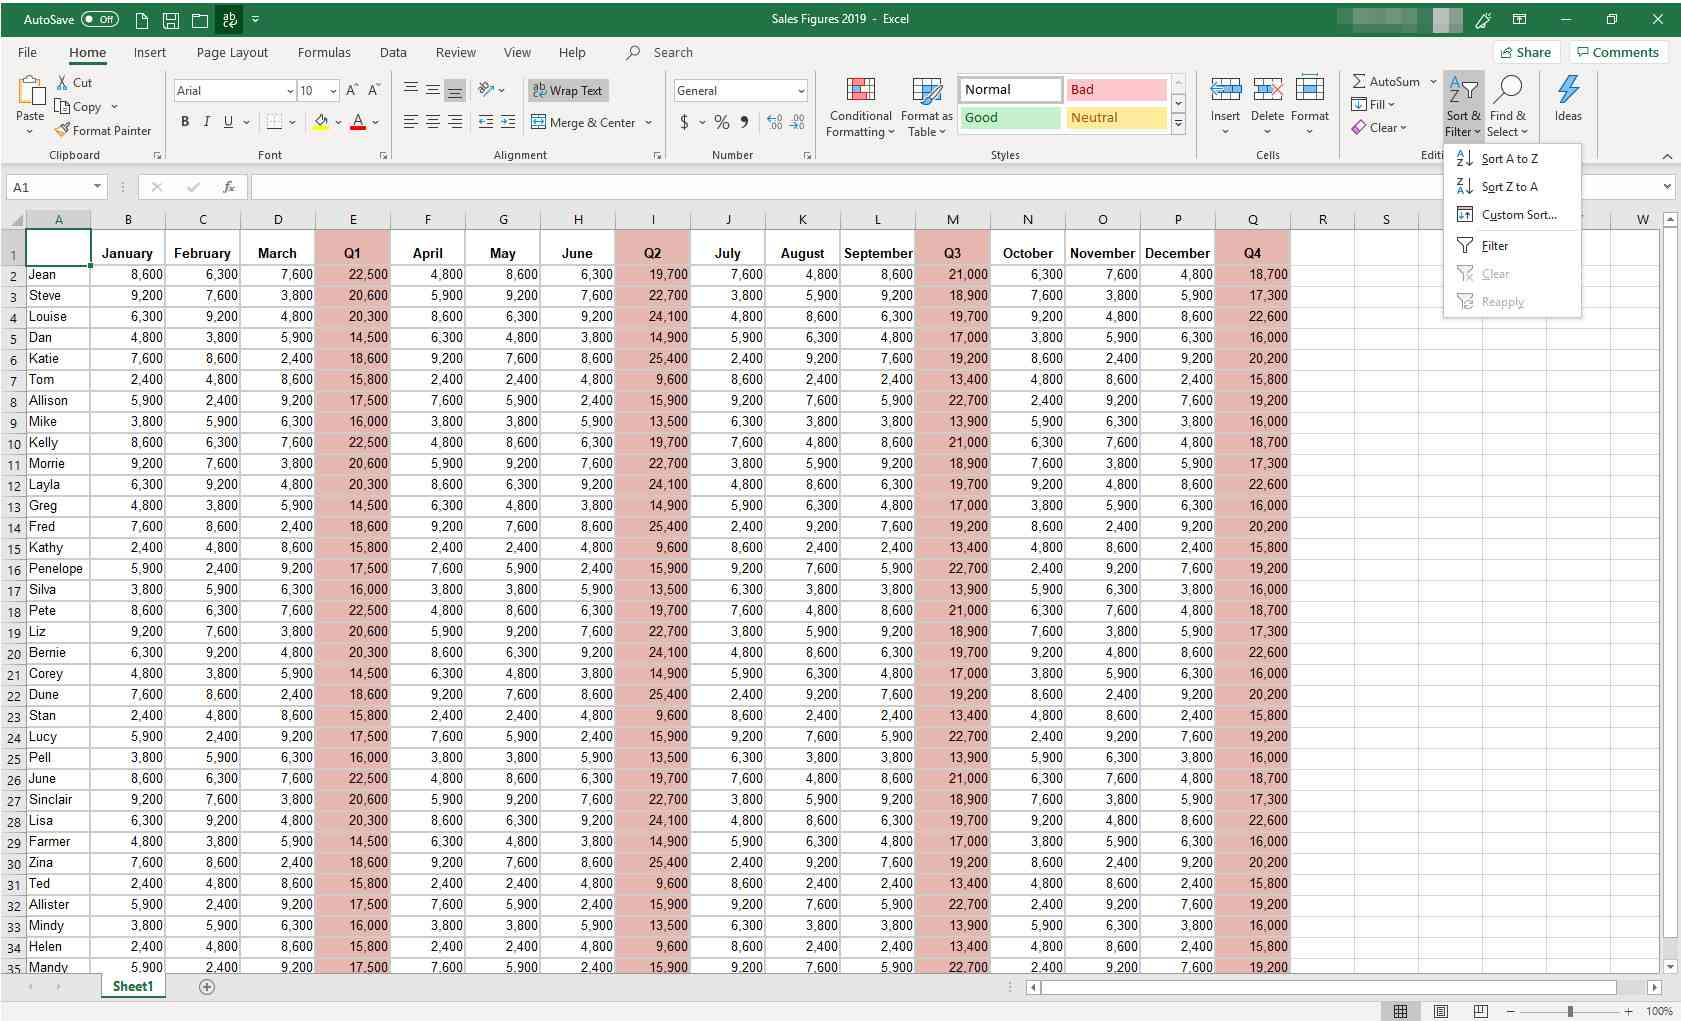 How a Filter Works in Excel Spreadsheets